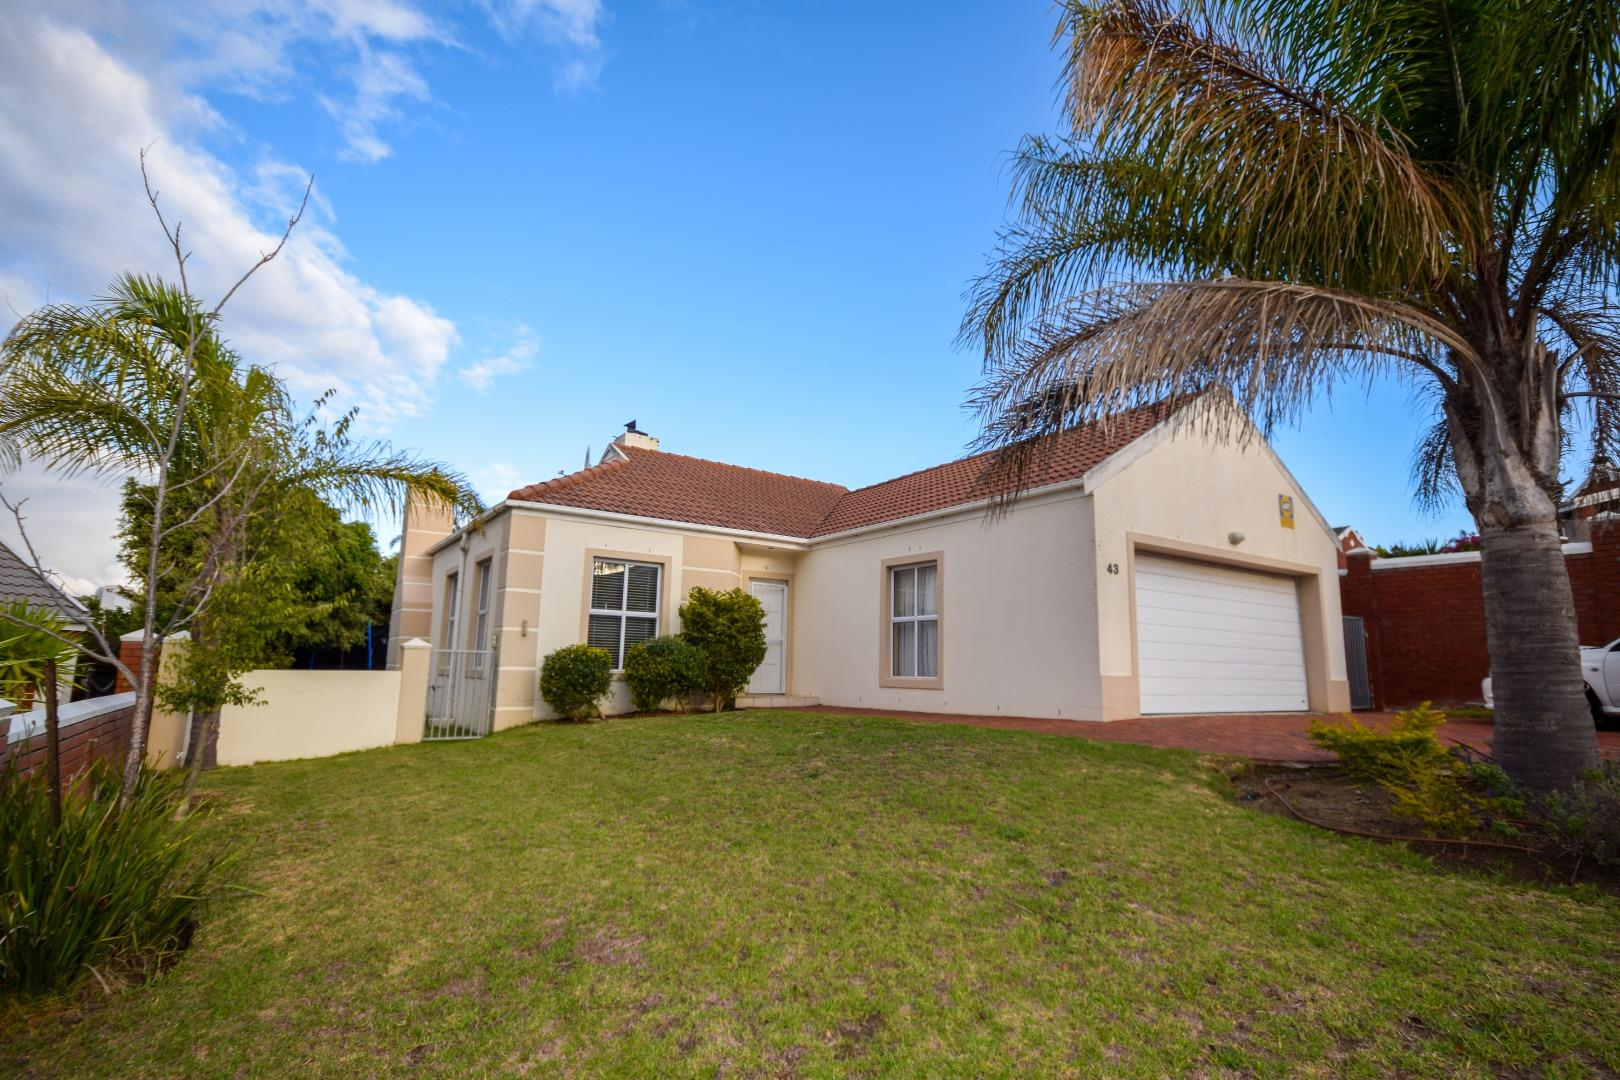 3 Bedroom House for Sale in Van Riebeeckshof, Bellville - Western Cape